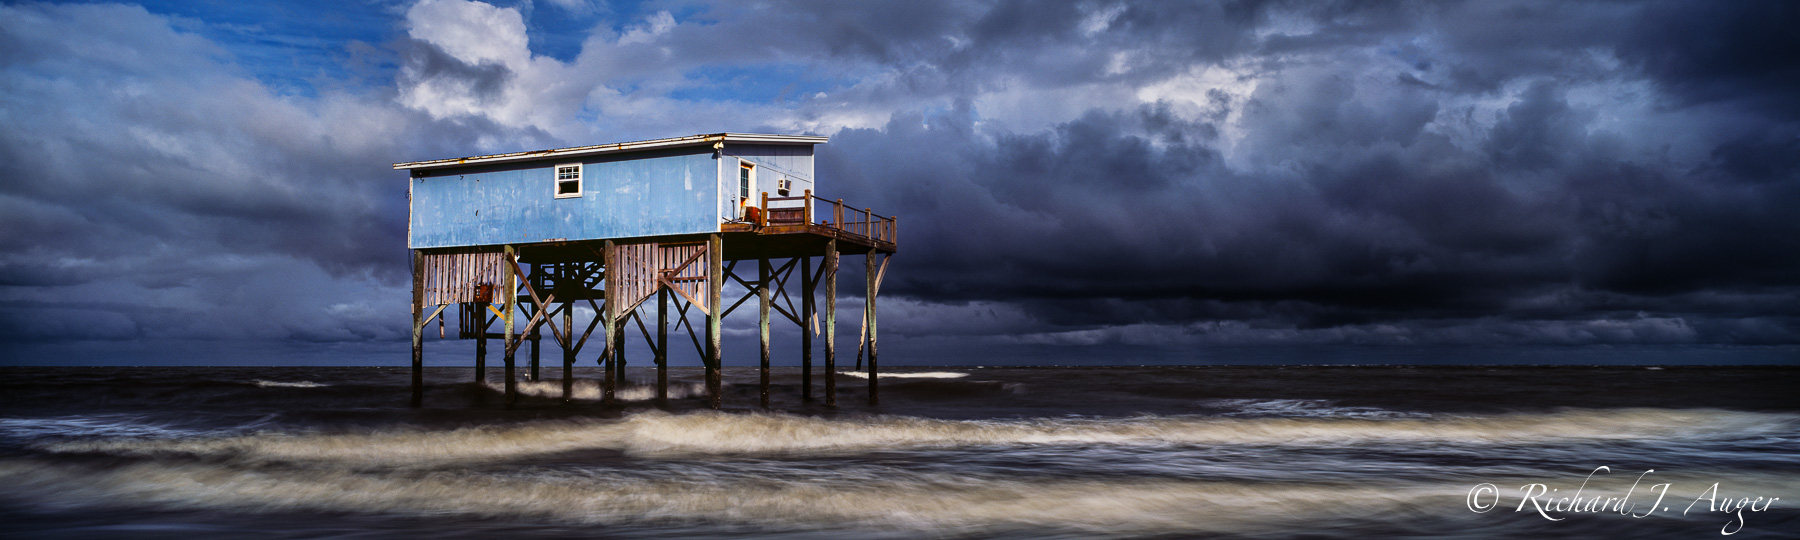 Hunting Island, South Carolina, Panorama, Photographer, Storm, Stilt House, Fishing Shack, Ocean, Waves, Blues